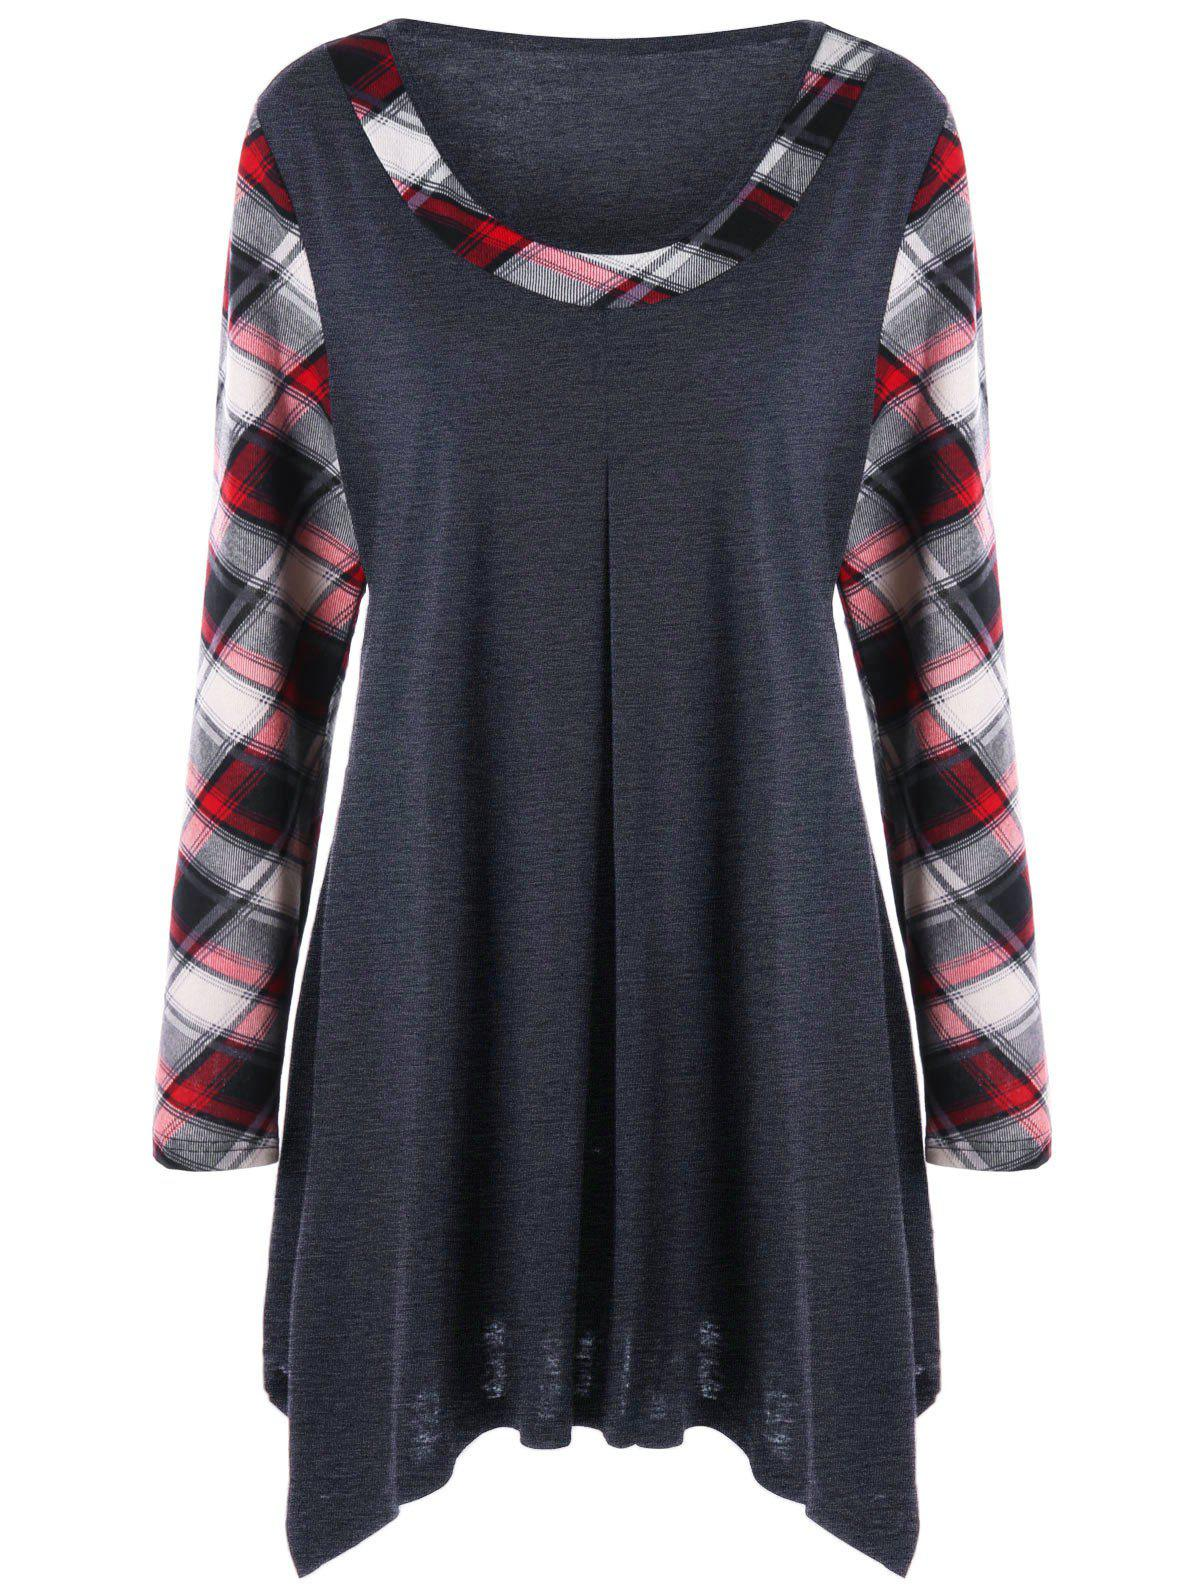 Plus Size Plaid Trim Tunic TopWOMEN<br><br>Size: 2XL; Color: BLACK GREY; Material: Spandex; Shirt Length: Long; Sleeve Length: Full; Collar: Scoop Neck; Style: Casual; Season: Fall,Spring; Pattern Type: Plaid; Weight: 0.3400kg; Package Contents: 1 x Top;